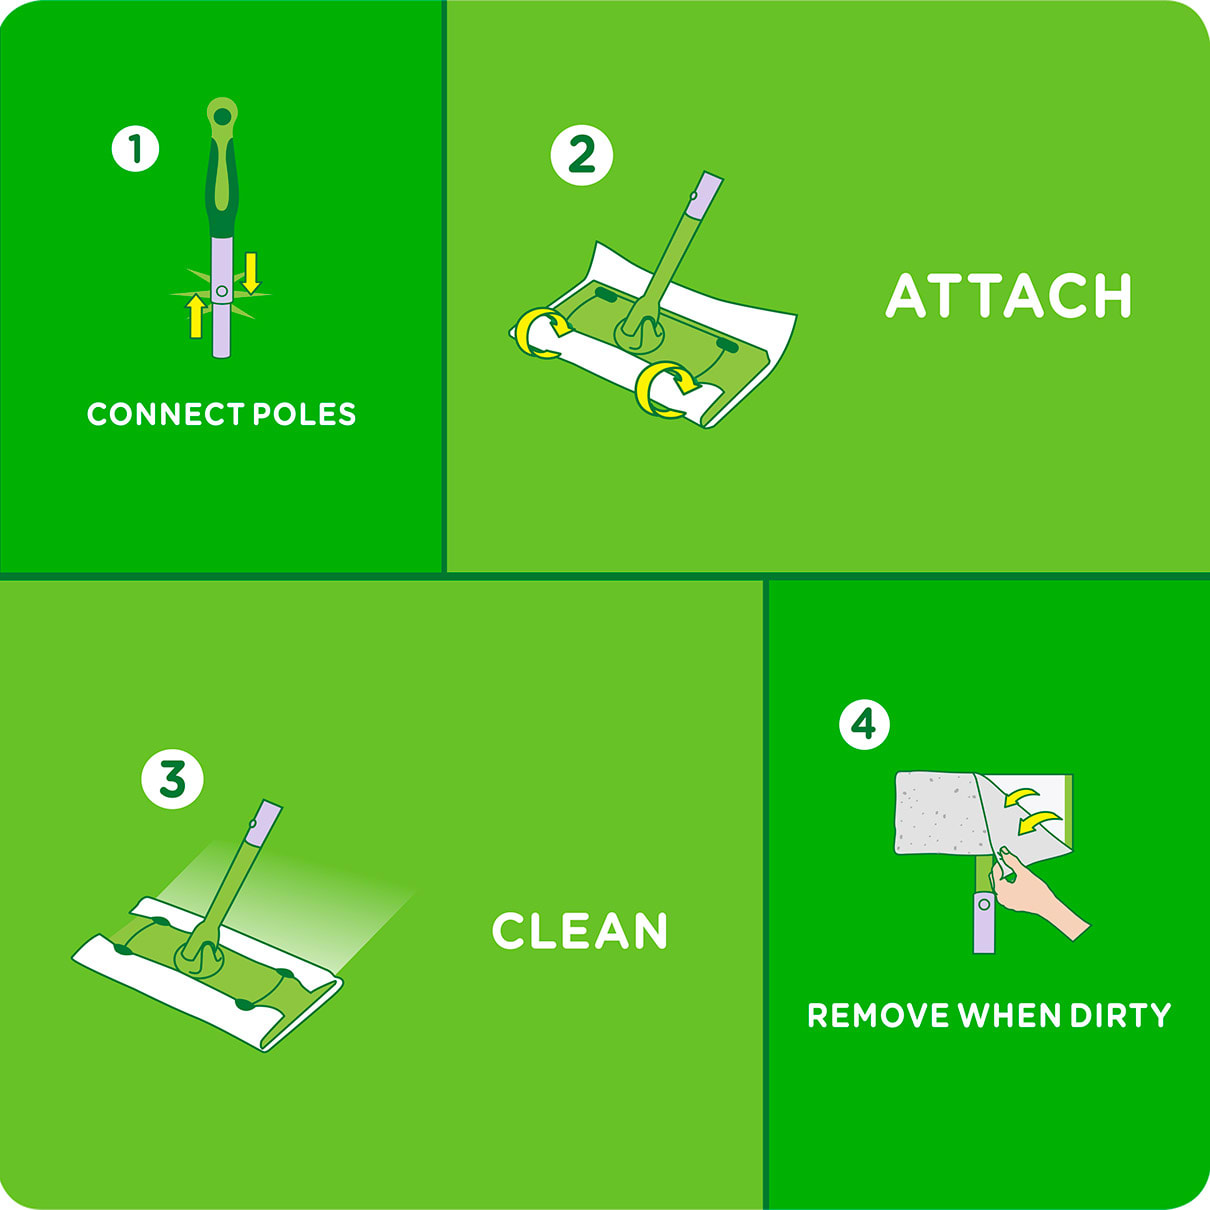 Swiffer Sweeper Instructions Connect Poles, Attach, Clean, Remove When Dirty